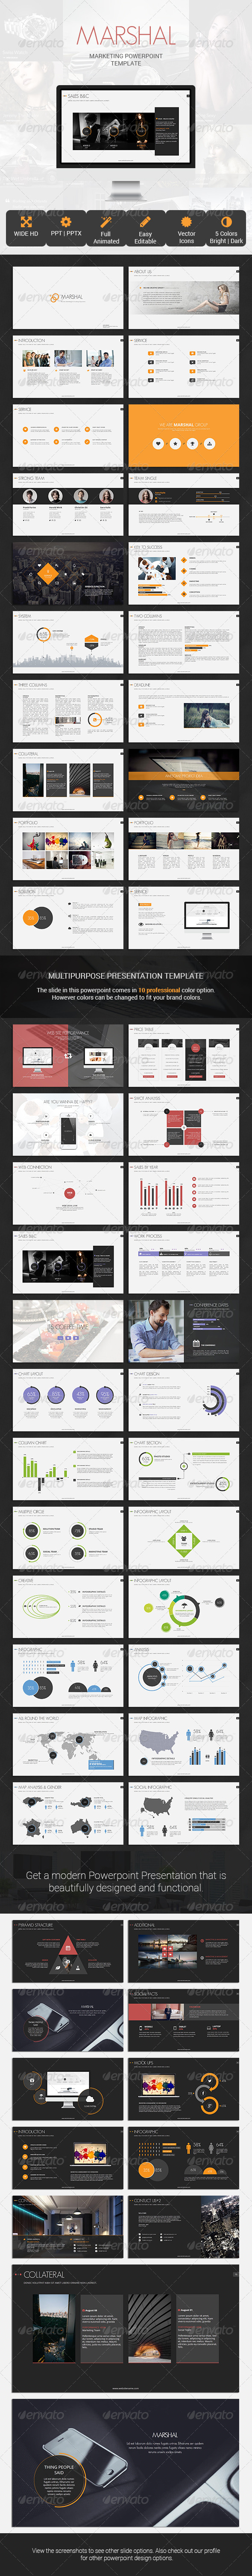 GraphicRiver Marshal Marketing Presentation Template 8008052